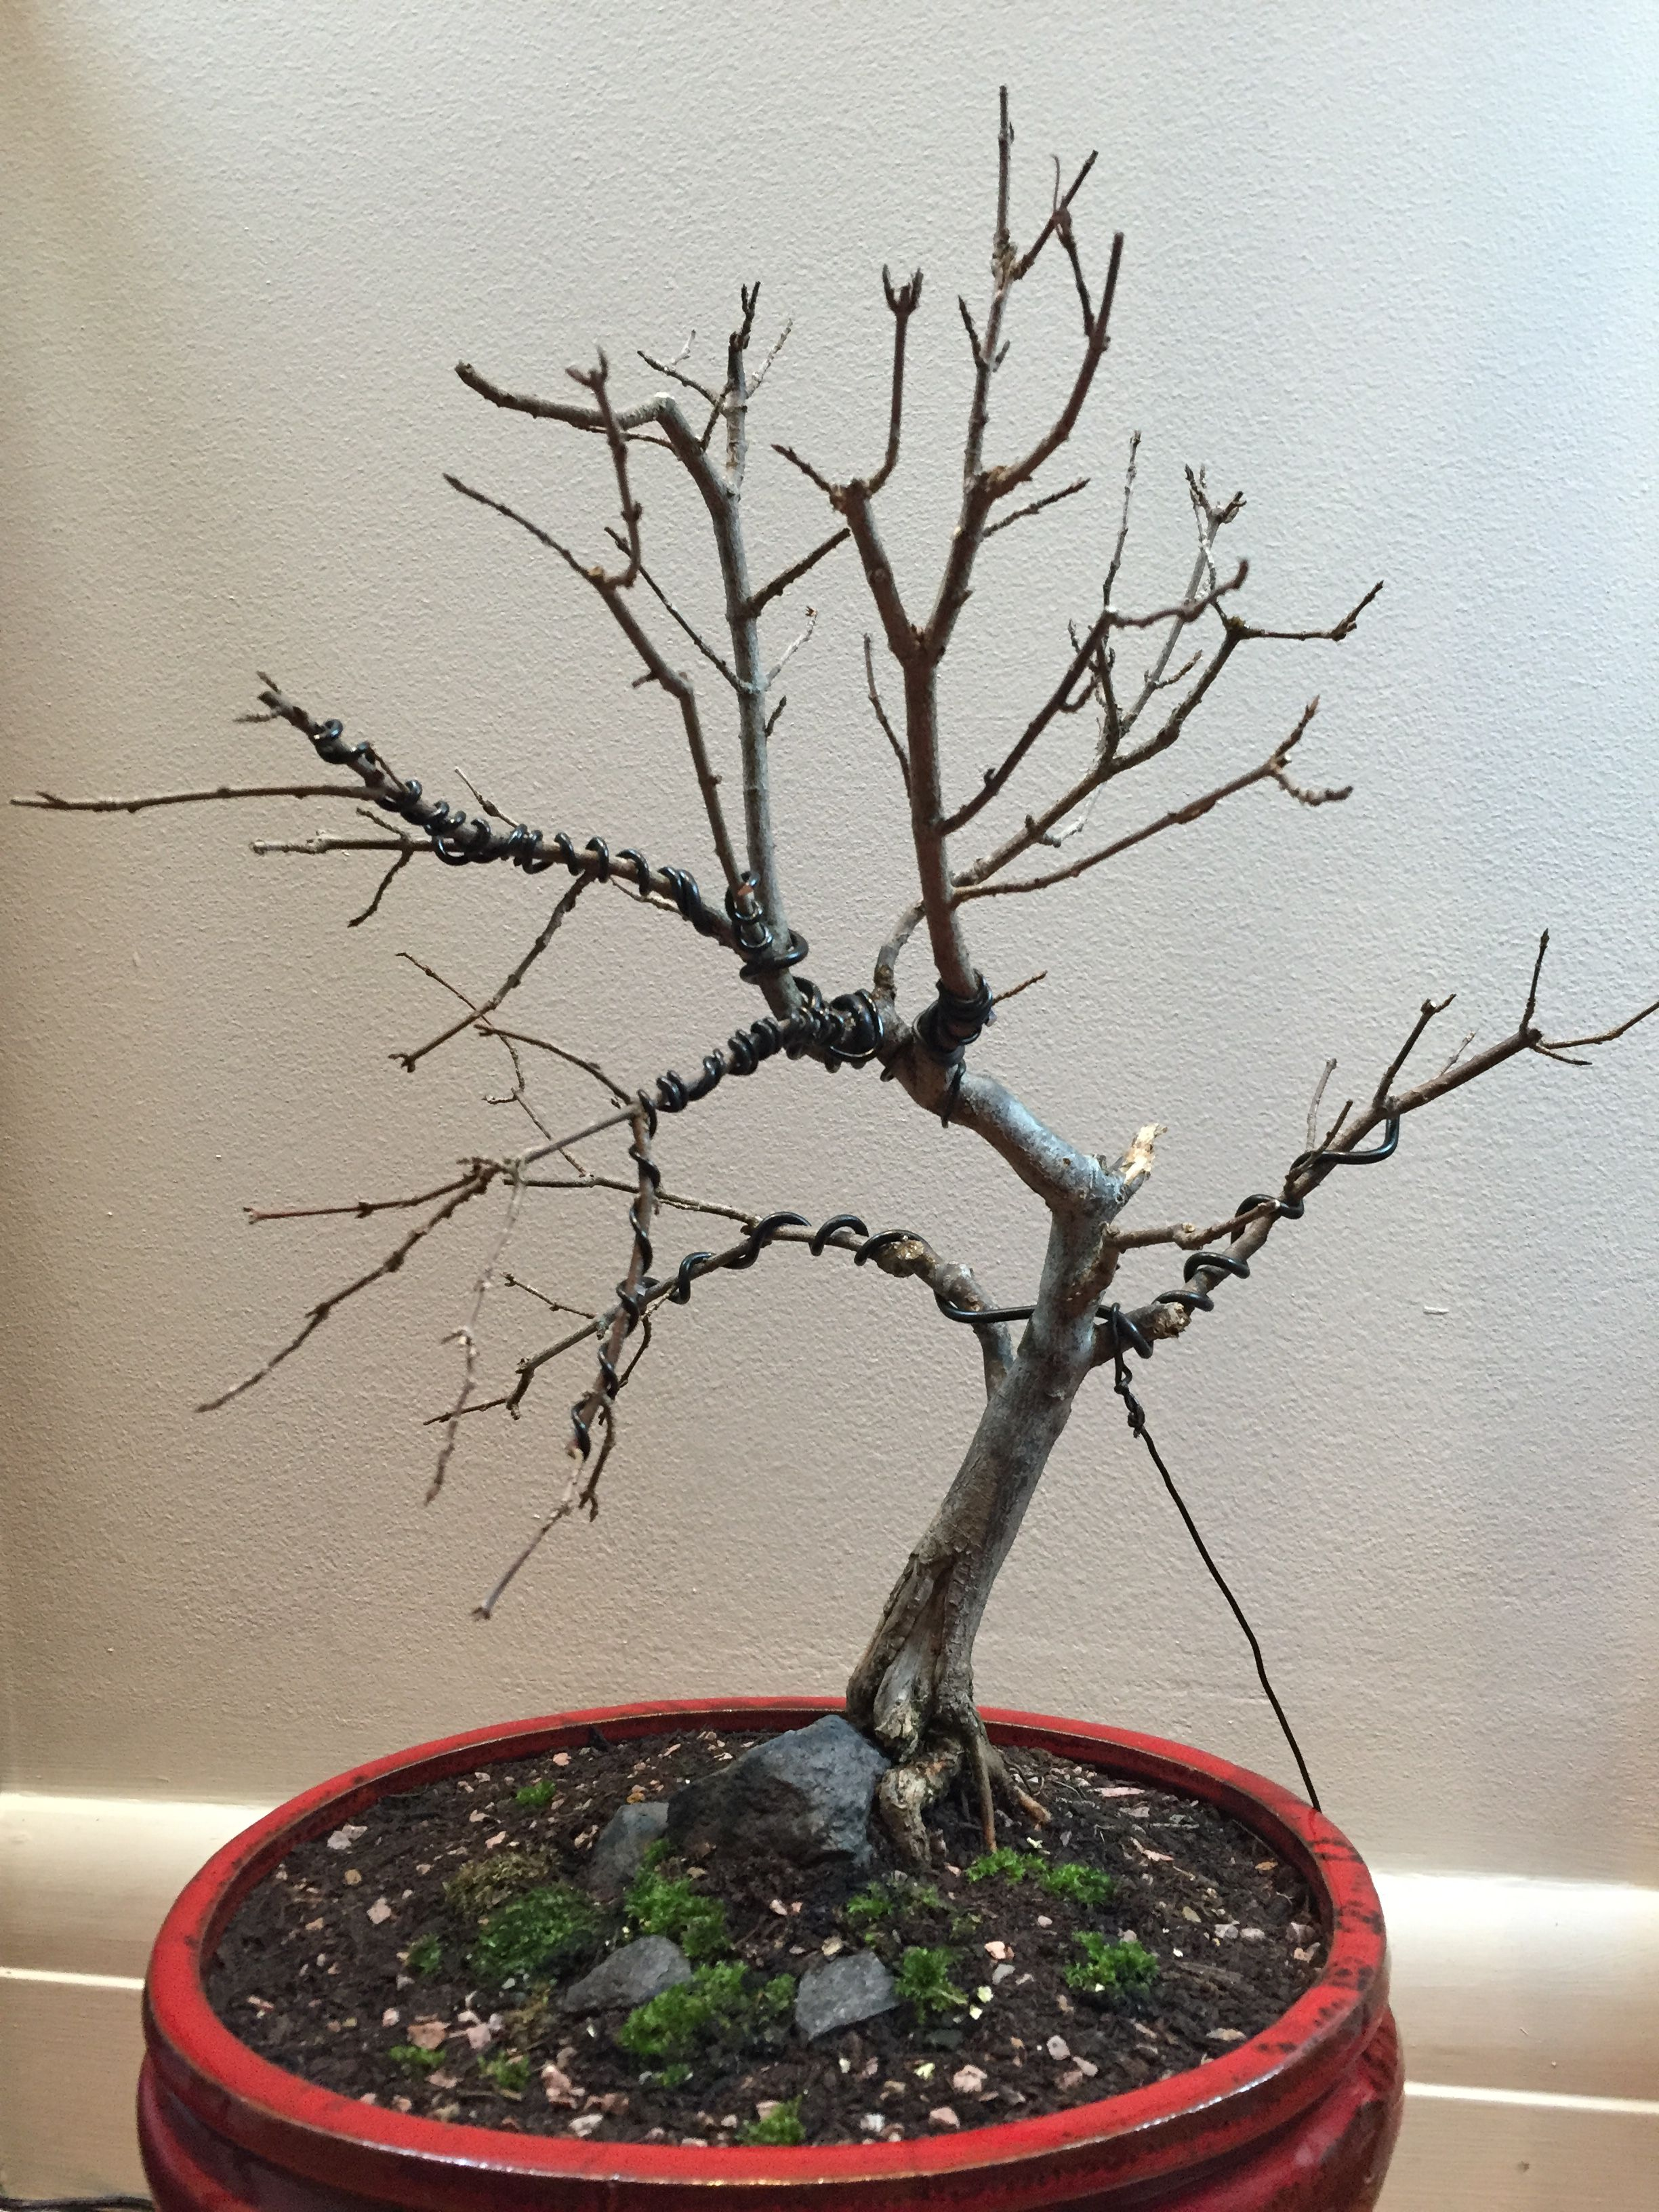 Brilliant My Trident Maple First Pruning Wiring And Re Potting 09 06 2016 Wiring Digital Resources Dylitashwinbiharinl